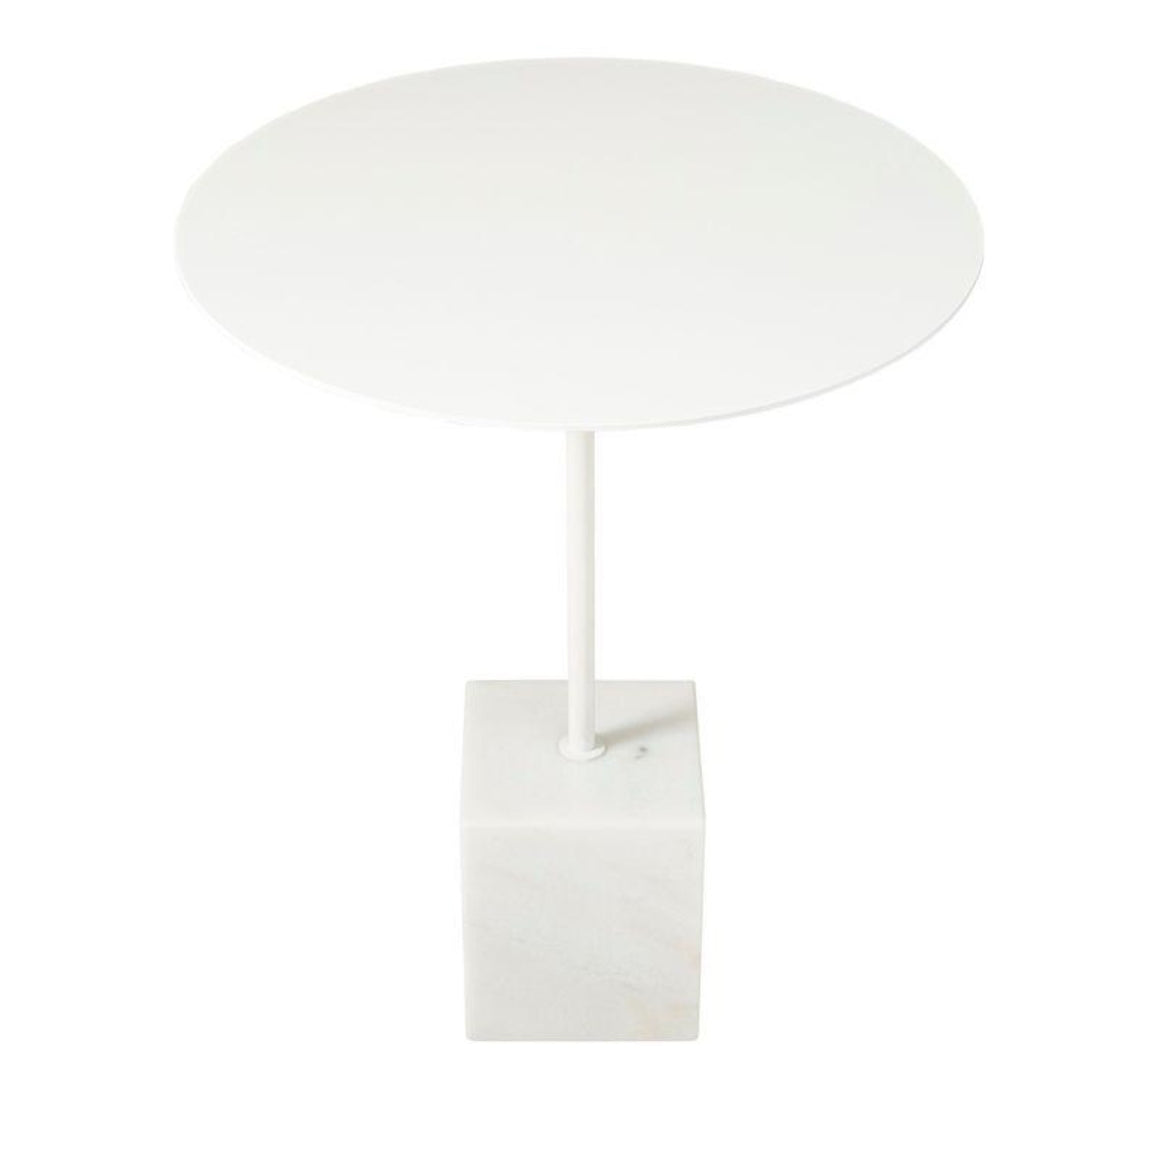 Suri White Side Table Side Table Horgans